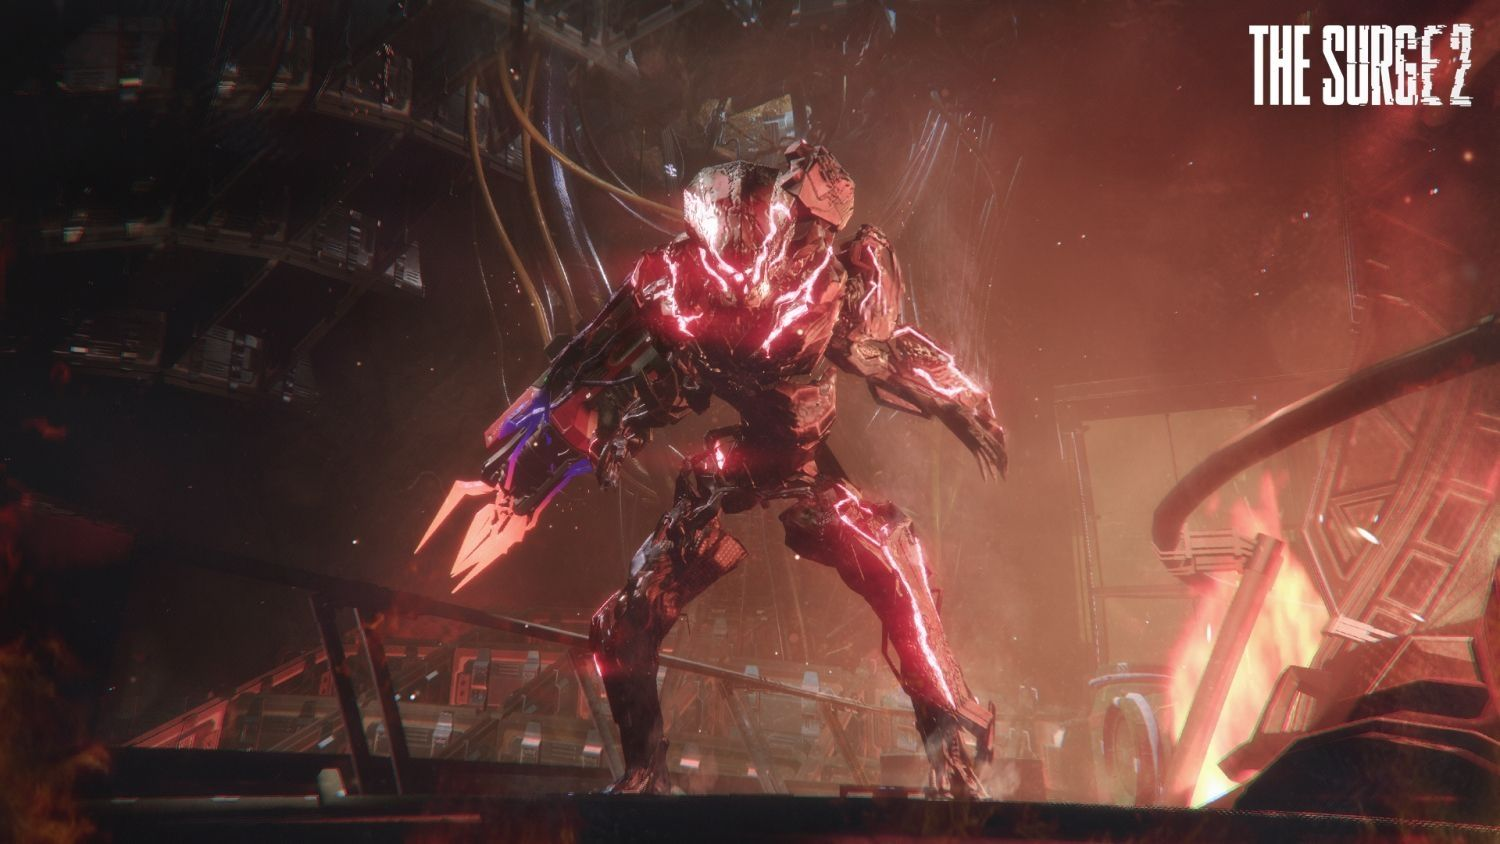 The Surge 2 (PS4) - 9